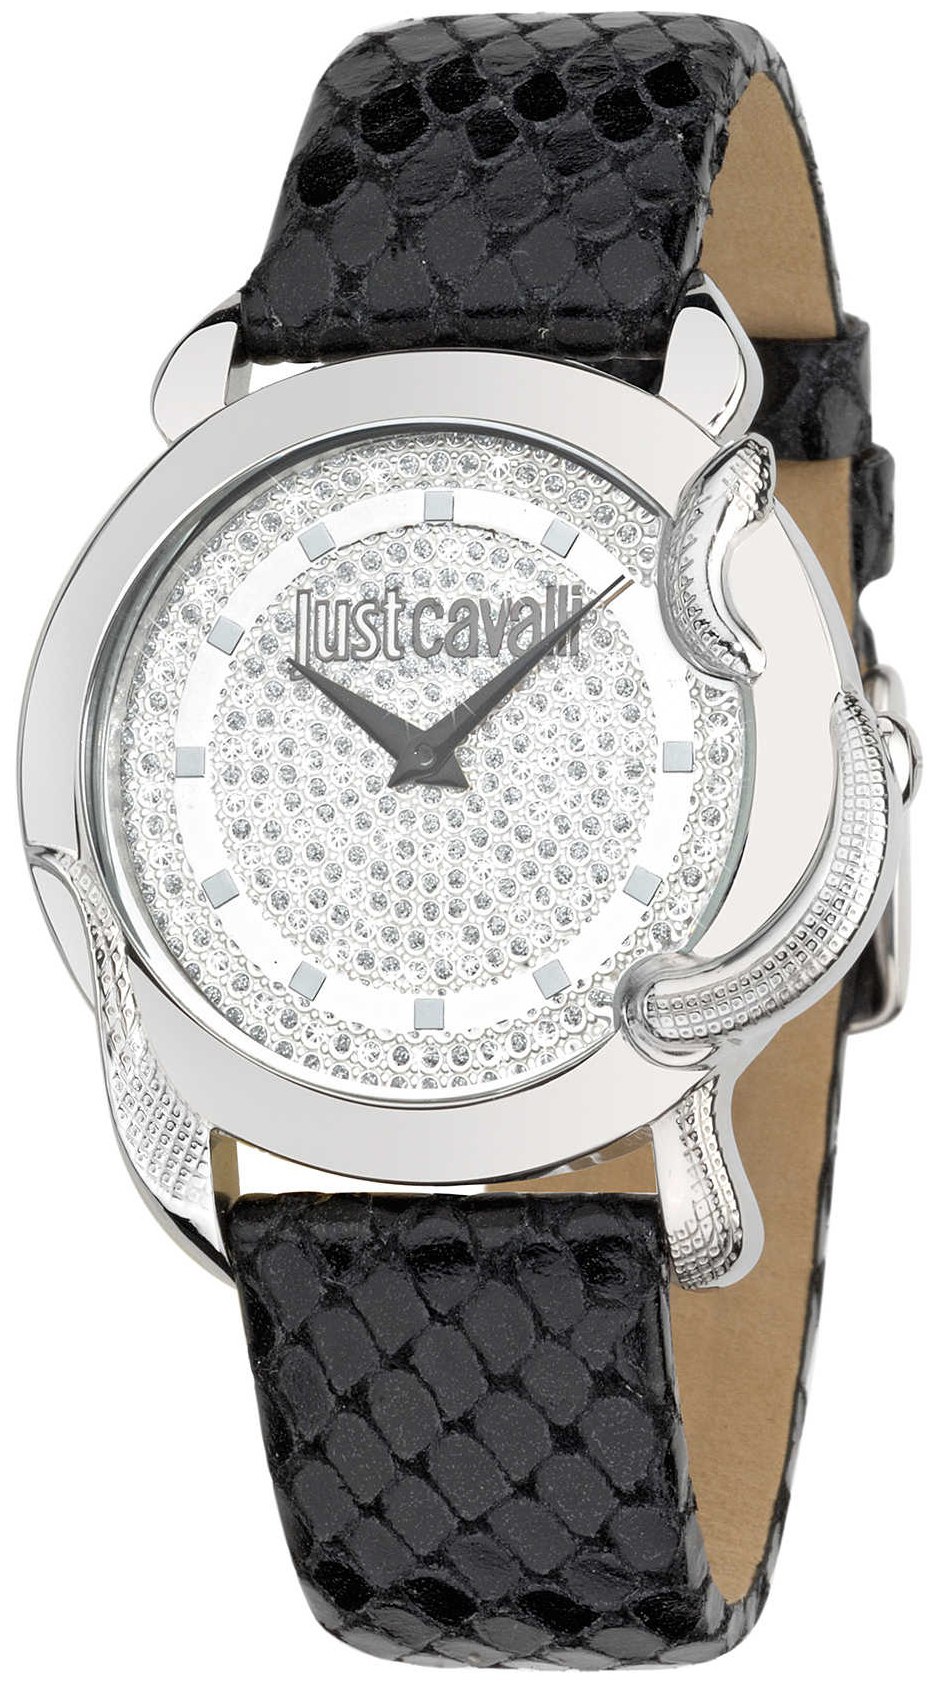 Just Cavalli Eden Dameklokke R7251576502 Hvit/Lær Ø39 mm - Just Cavalli